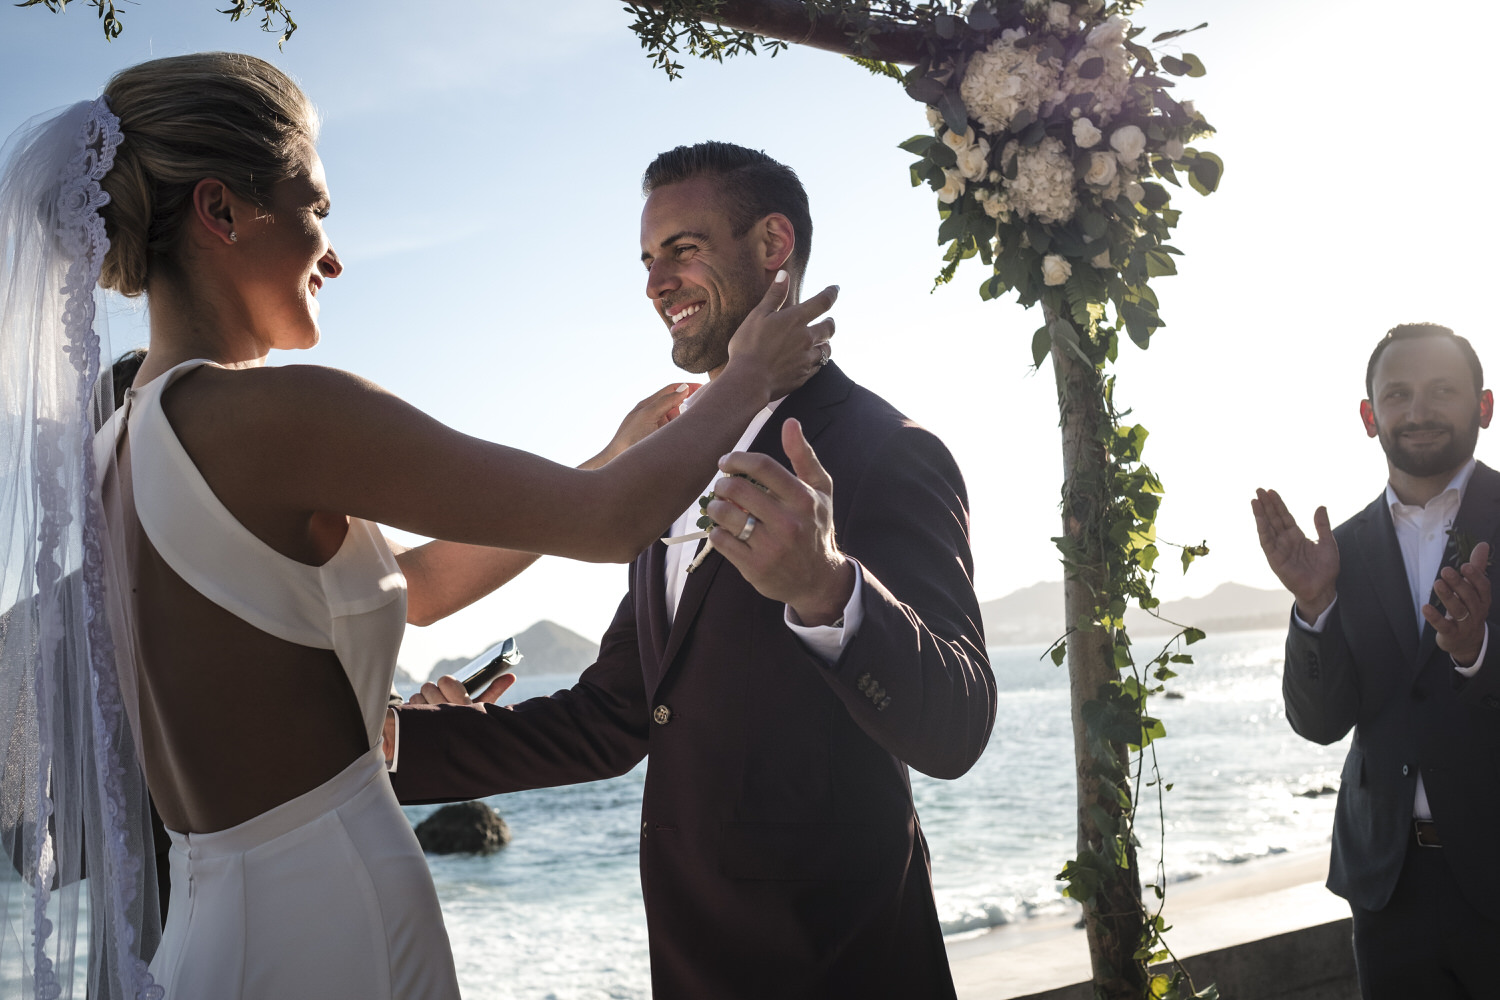 the_cape_thompson_cabo_wedding_mexico (6).jpg